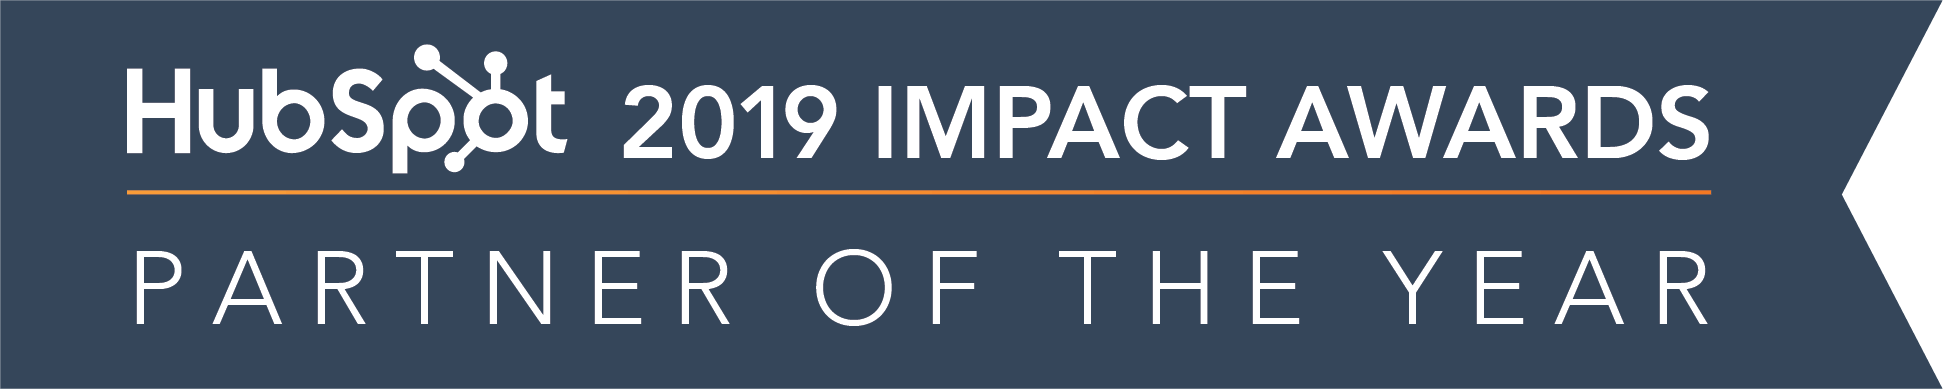 Hubspot_ImpactAwards_2019_PartnerOfTheYear-02